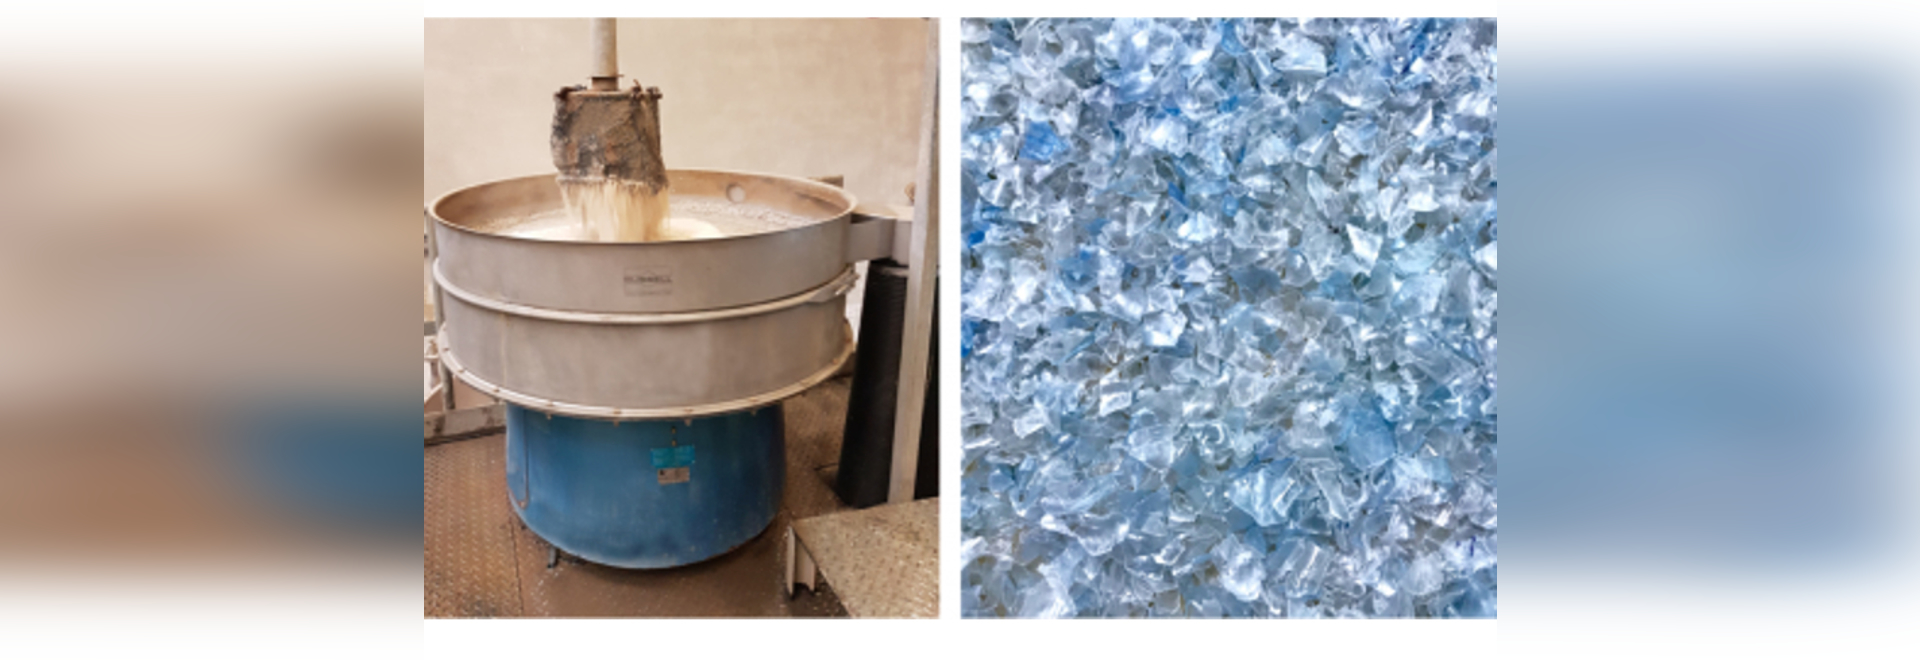 PFR Nord PET Plastic Recycling Separation from Washwater